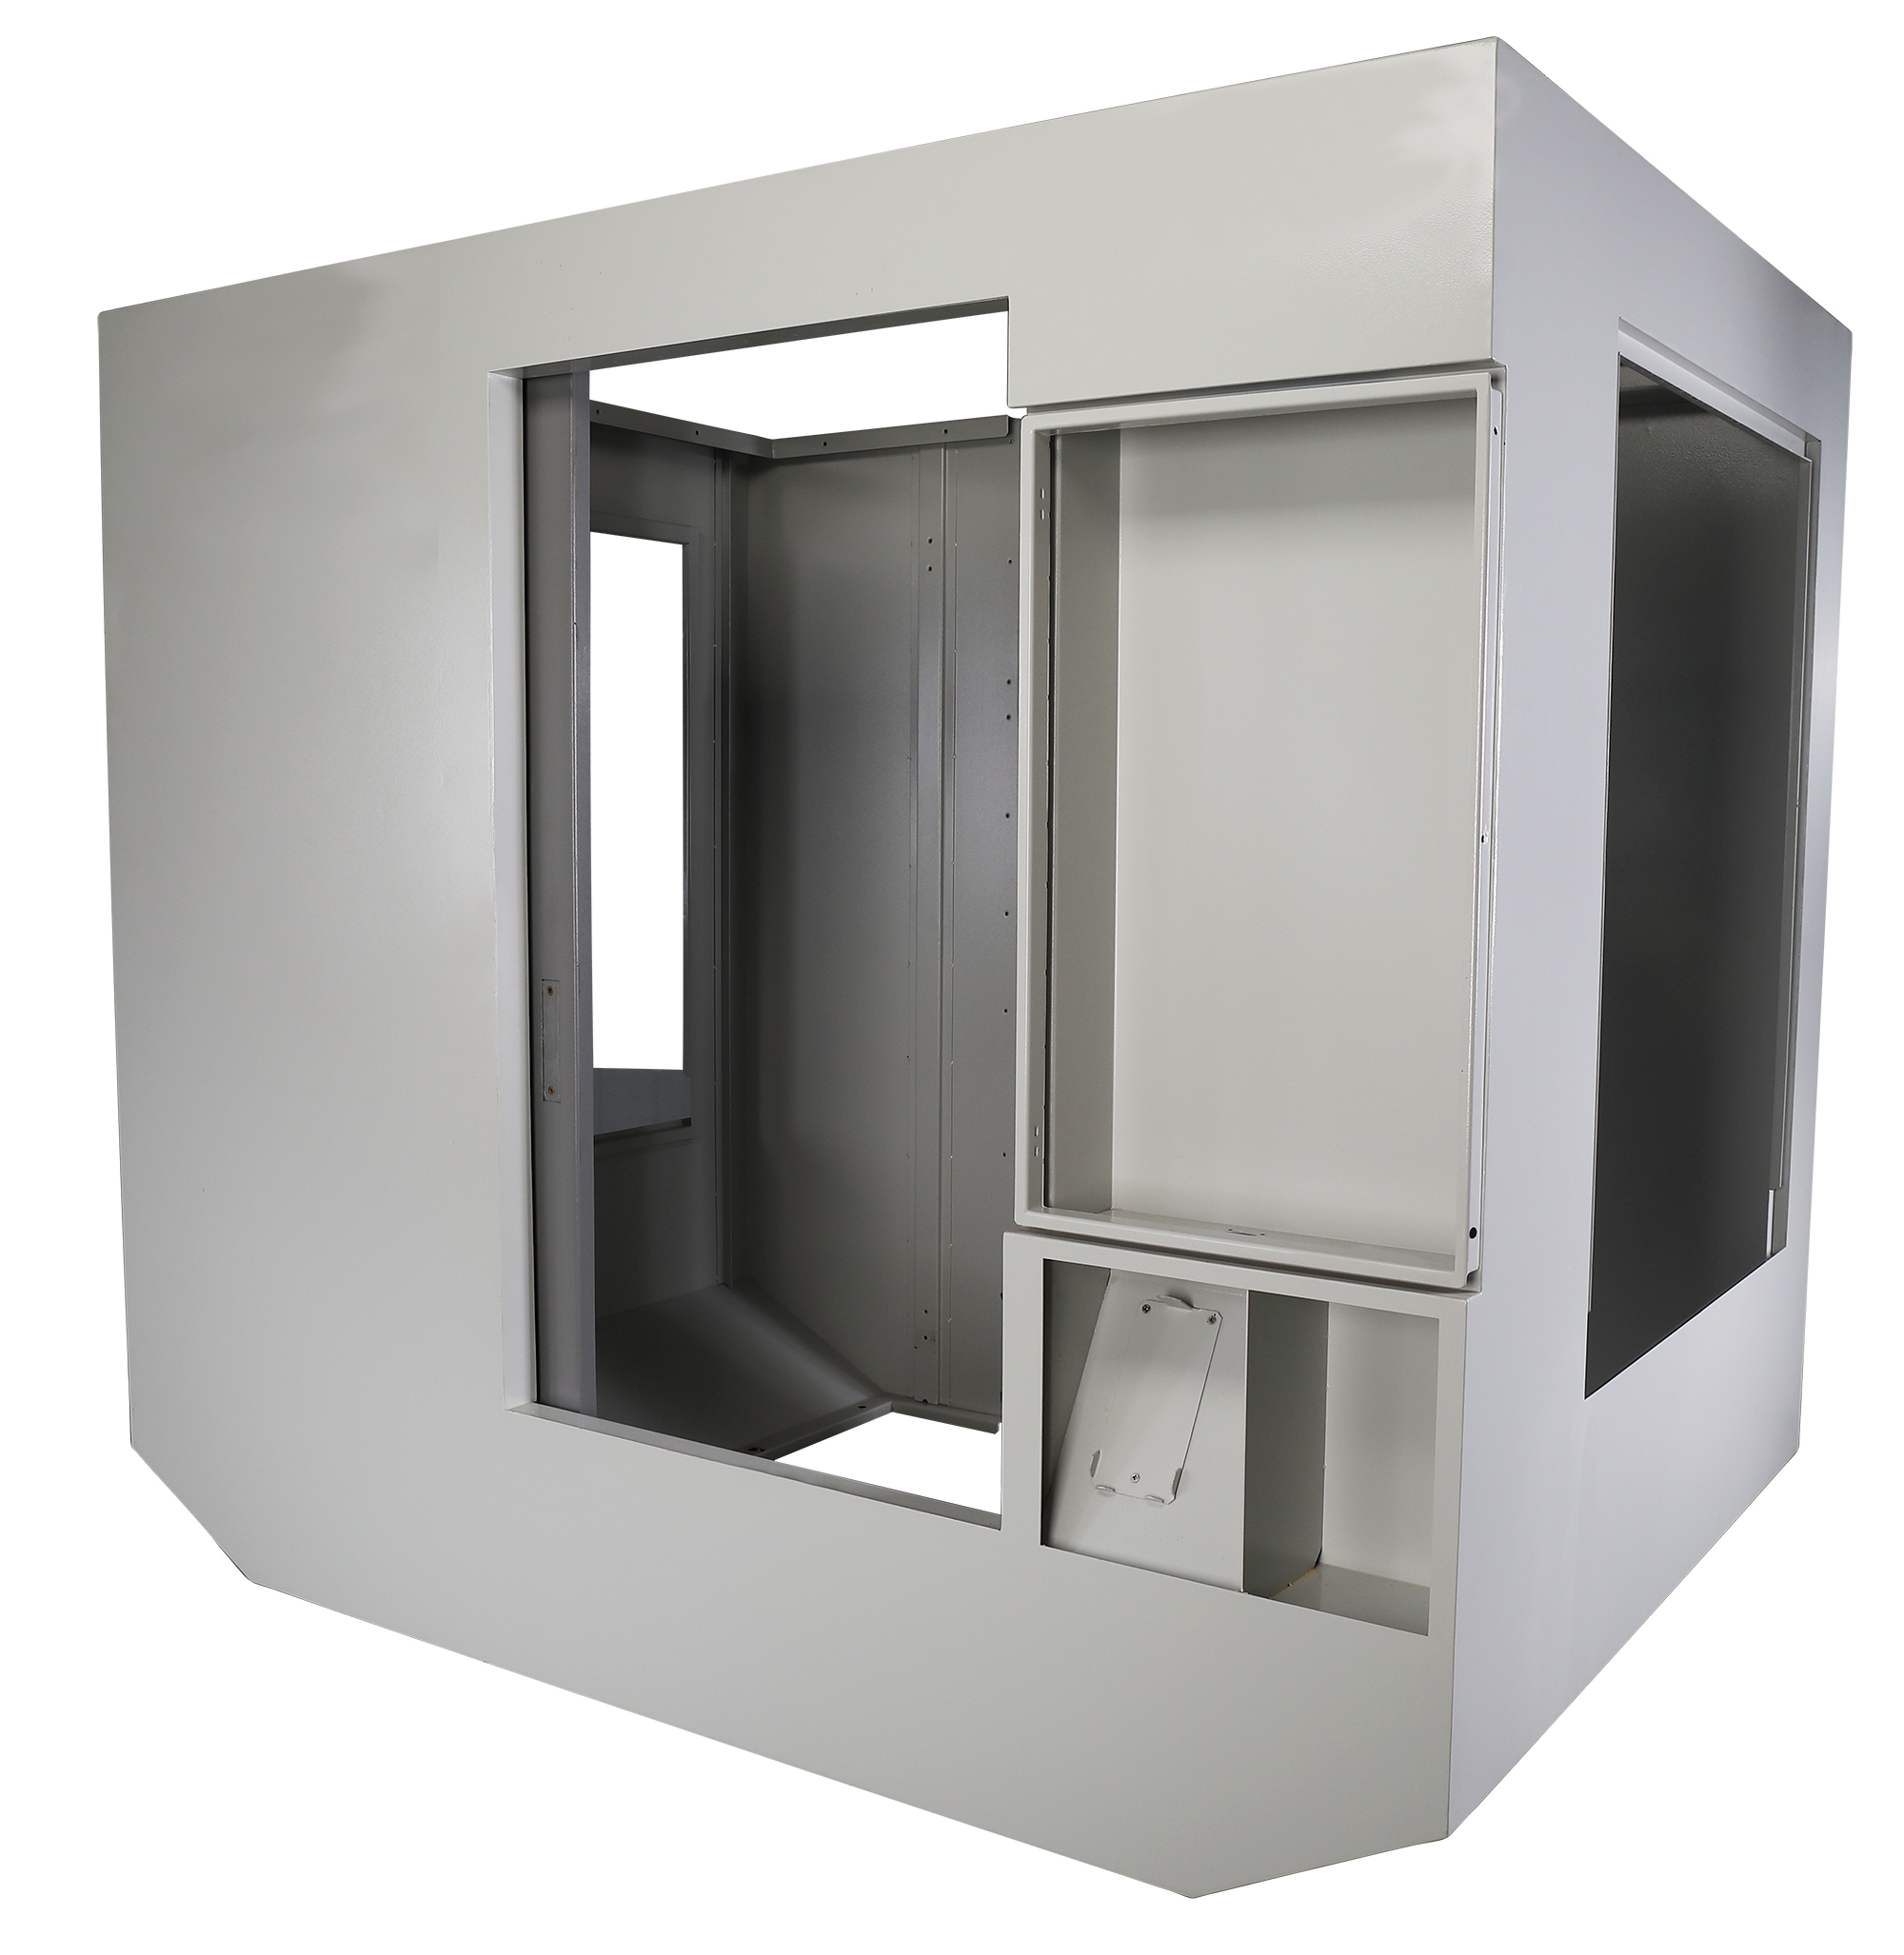 Matrix cabinet for storing telecommunication equipment